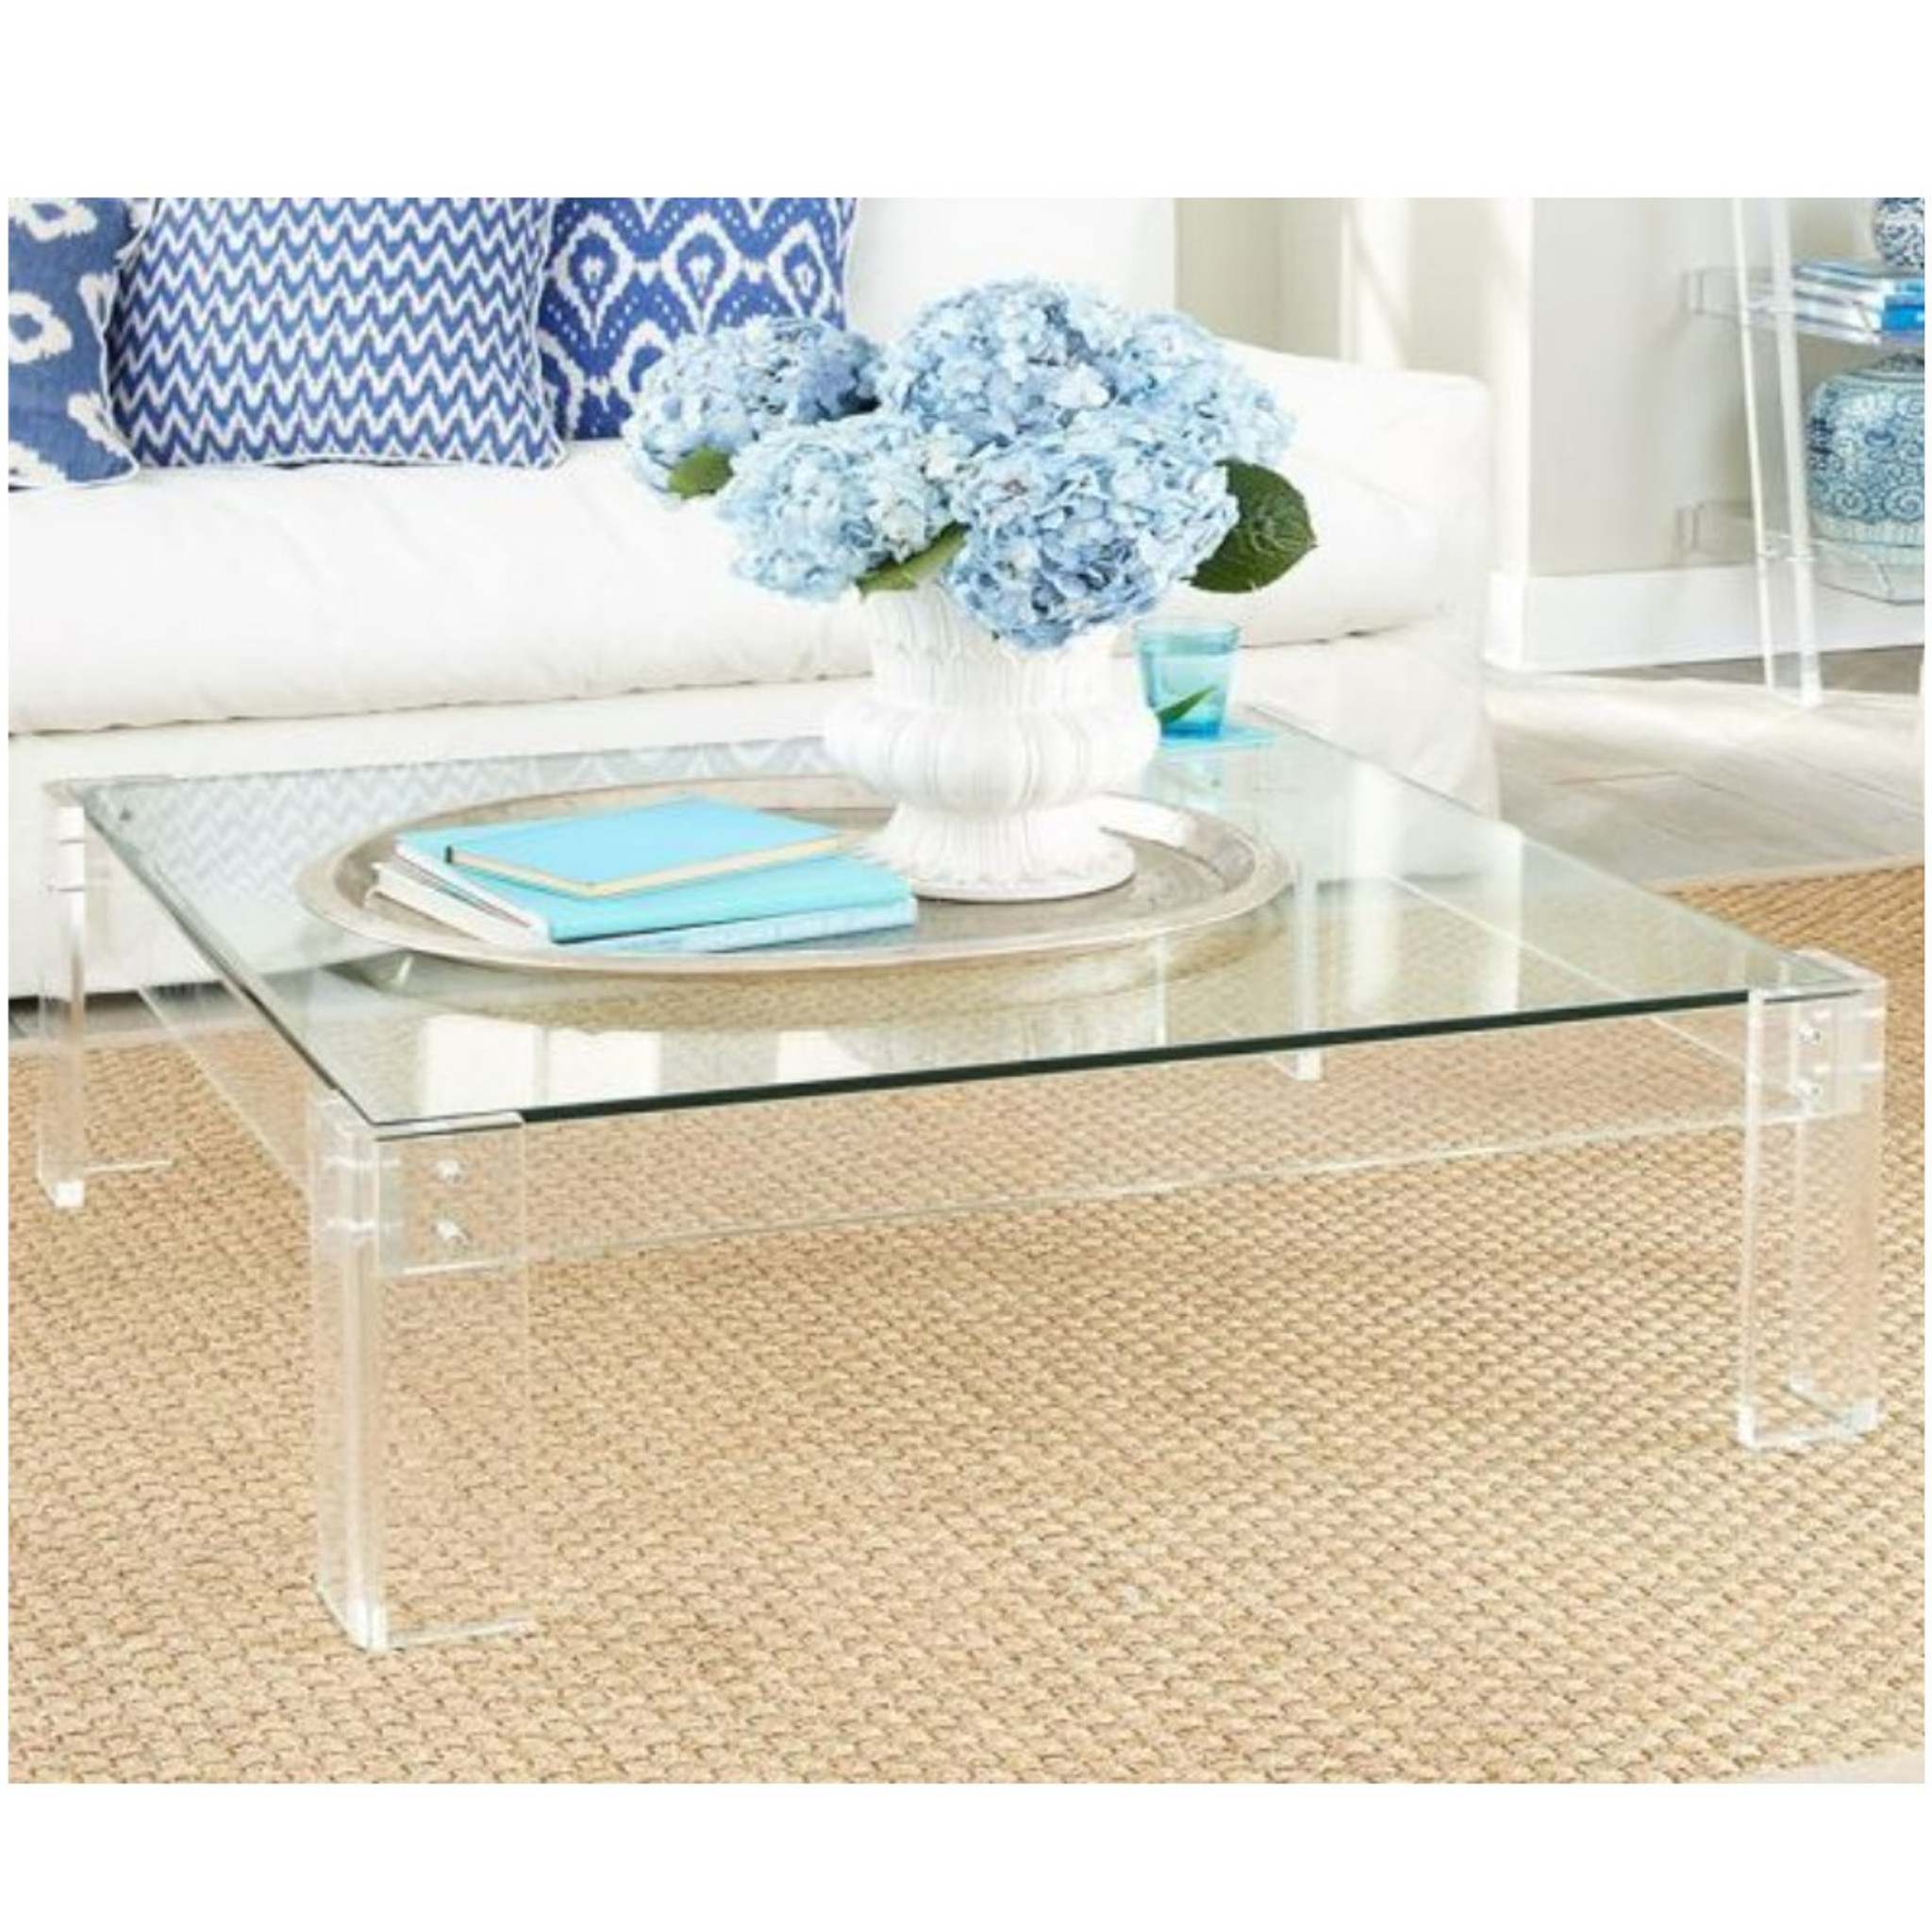 clear acrylic lucite square designer modern glass top coffee table metal screws bolts custom